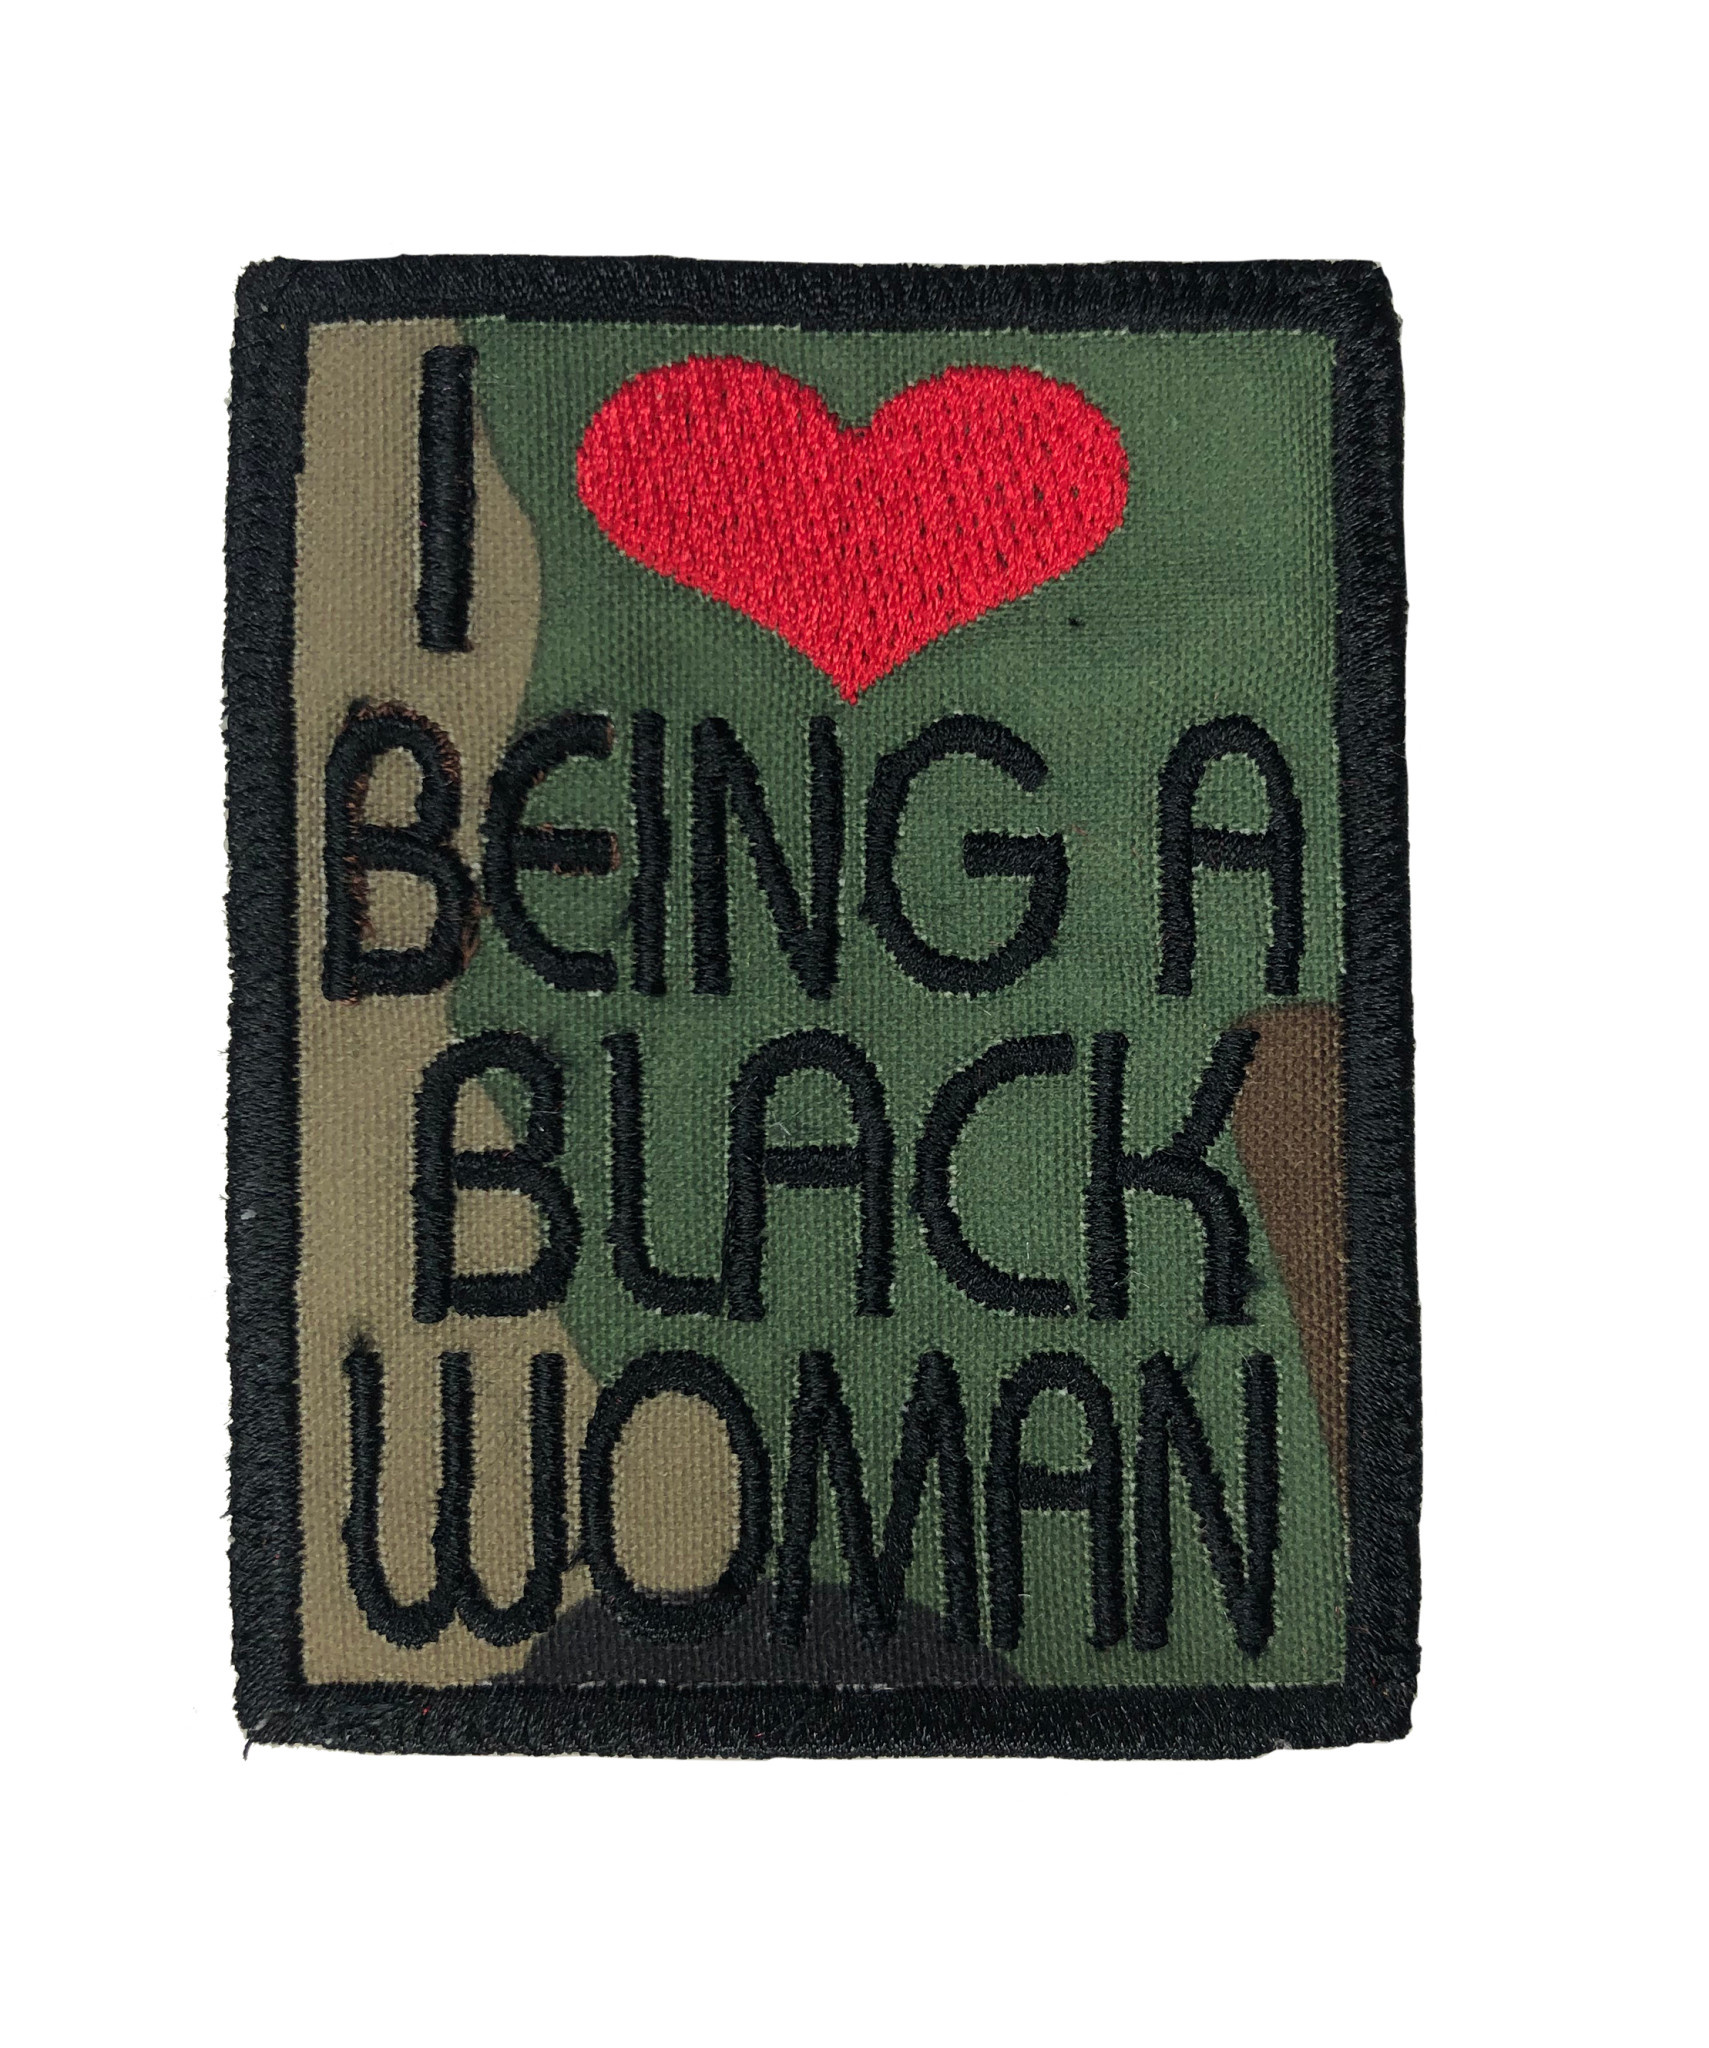 THE SHOP I LOVE BEING A BLACK WOMAN PATCHES-1